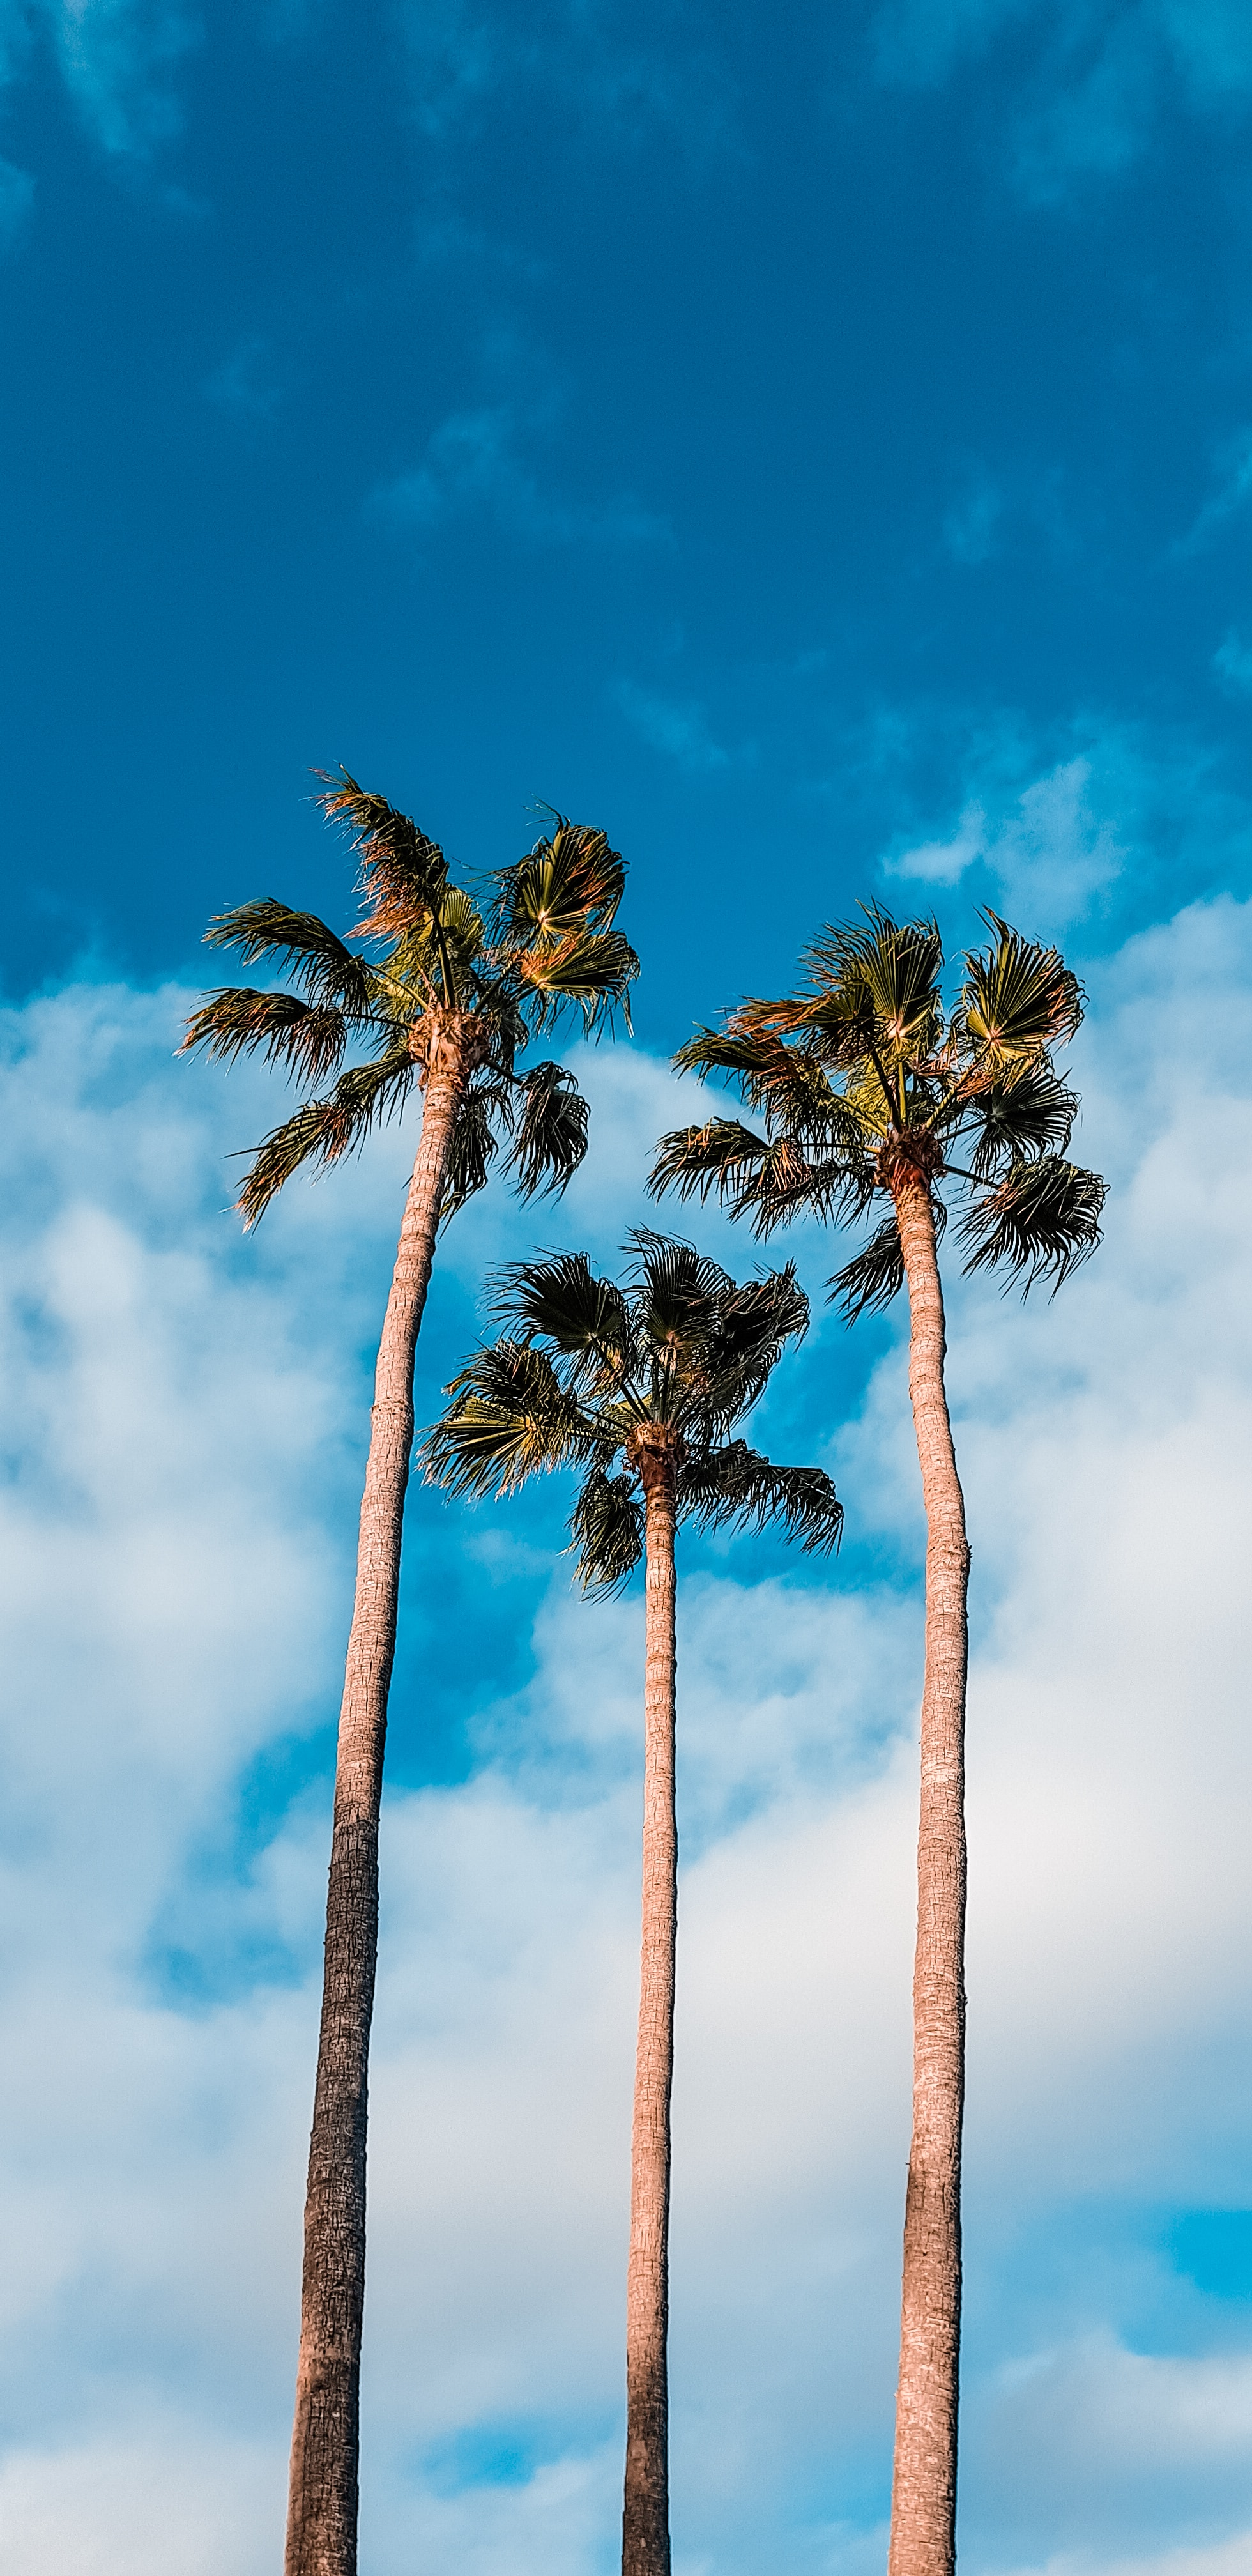 67793 download wallpaper Nature, Sky, Clouds, Tropics, Trees, Palms screensavers and pictures for free